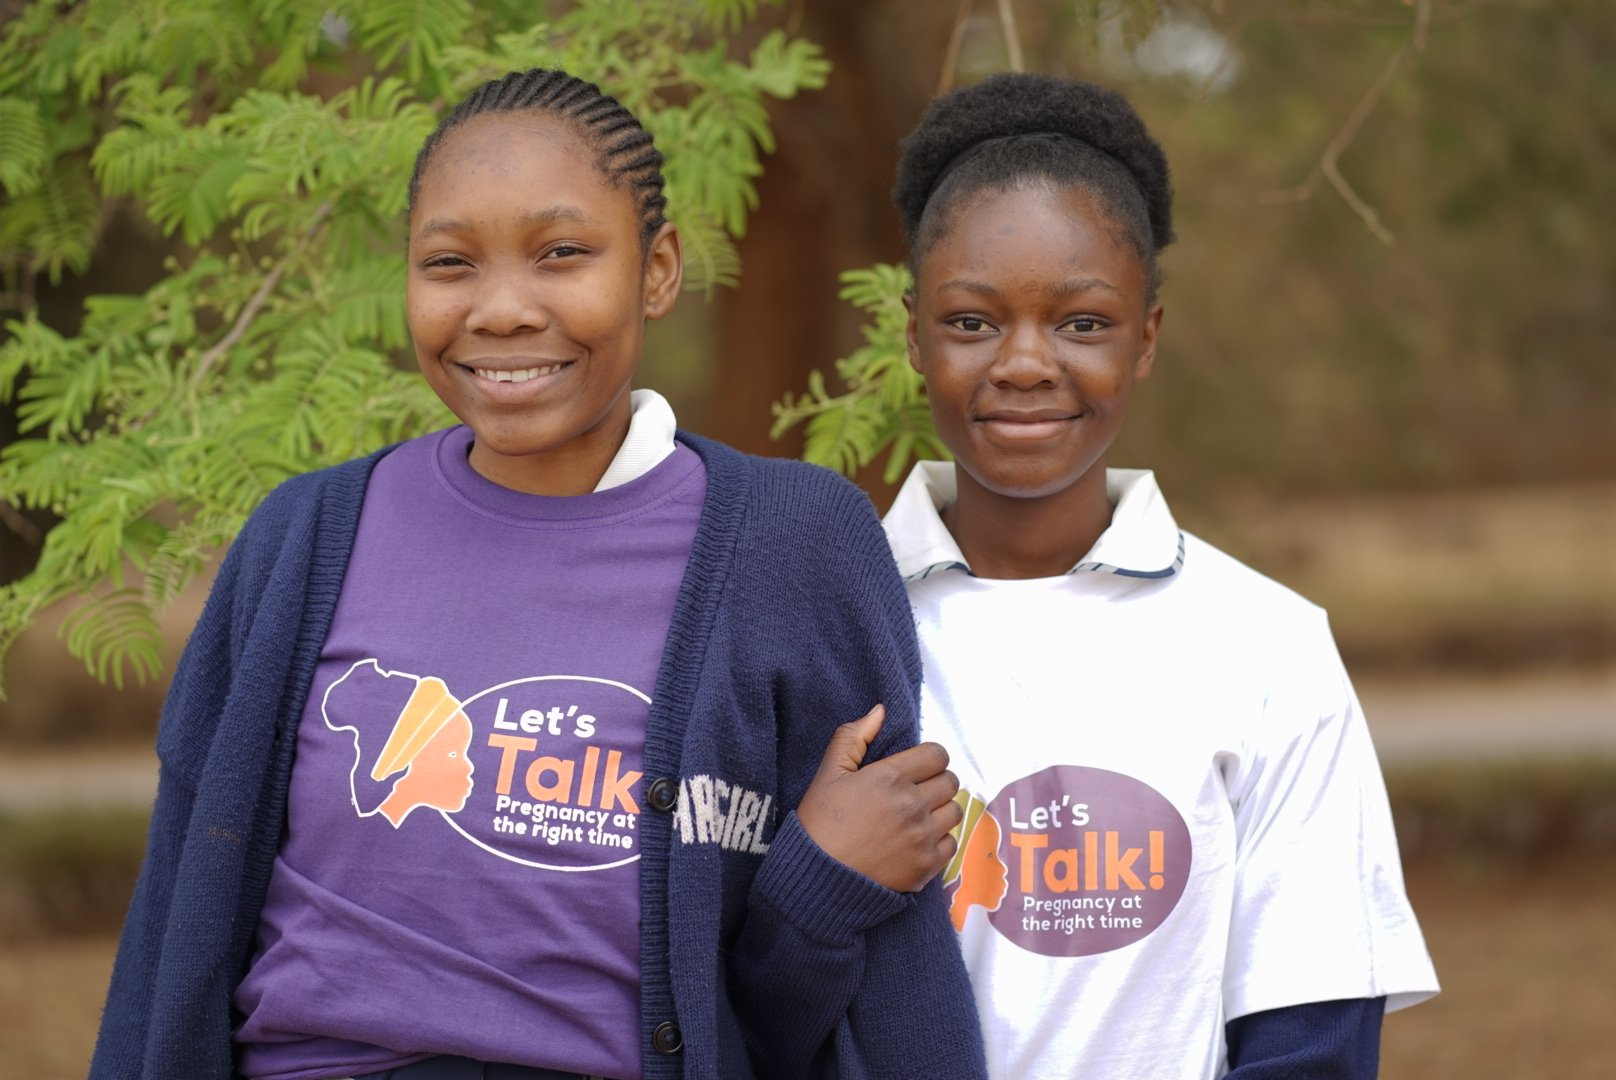 Let's Talk campaign launch in Zambia